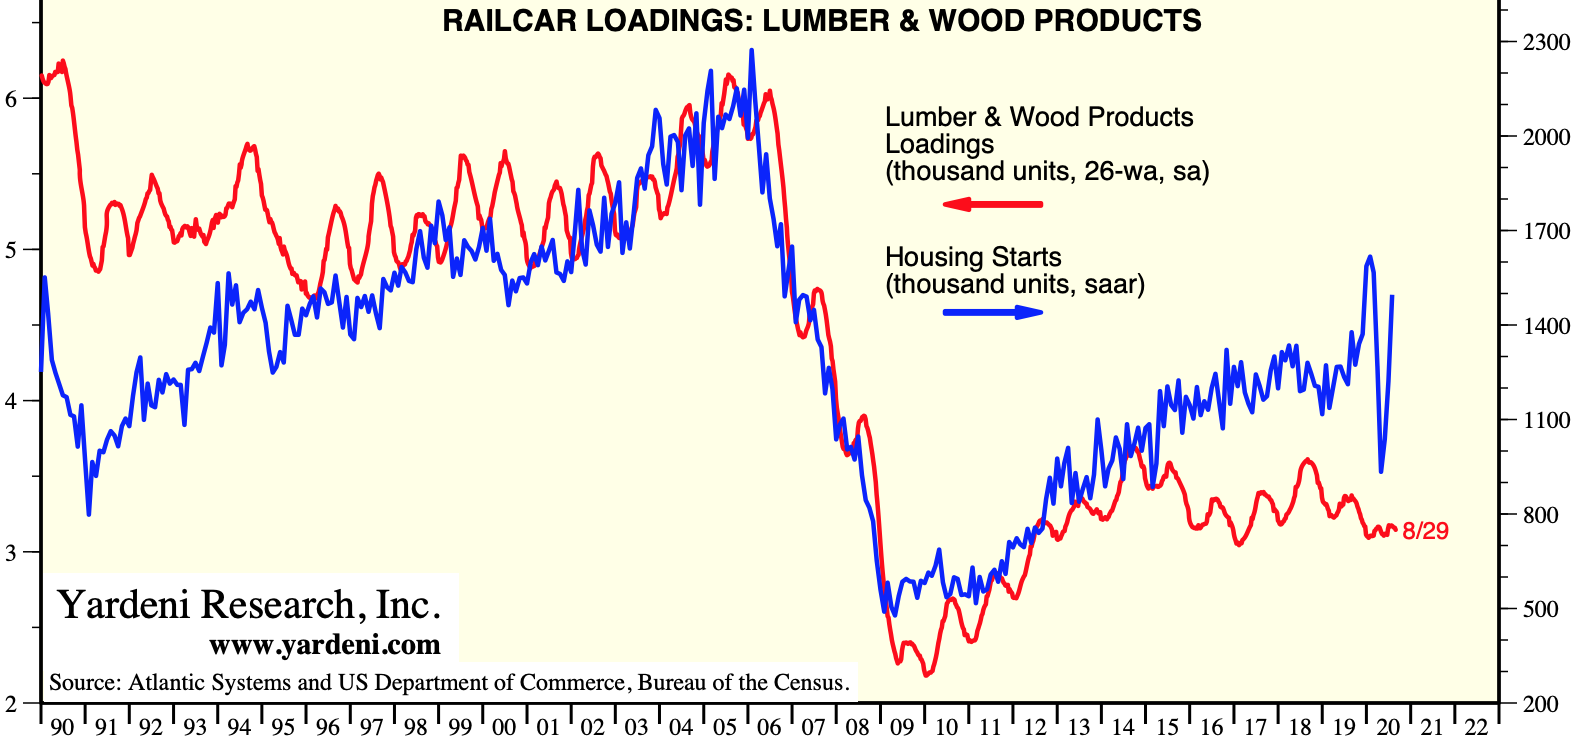 US Railcar Loadings, Lumber & Wood Products: AUG 2020